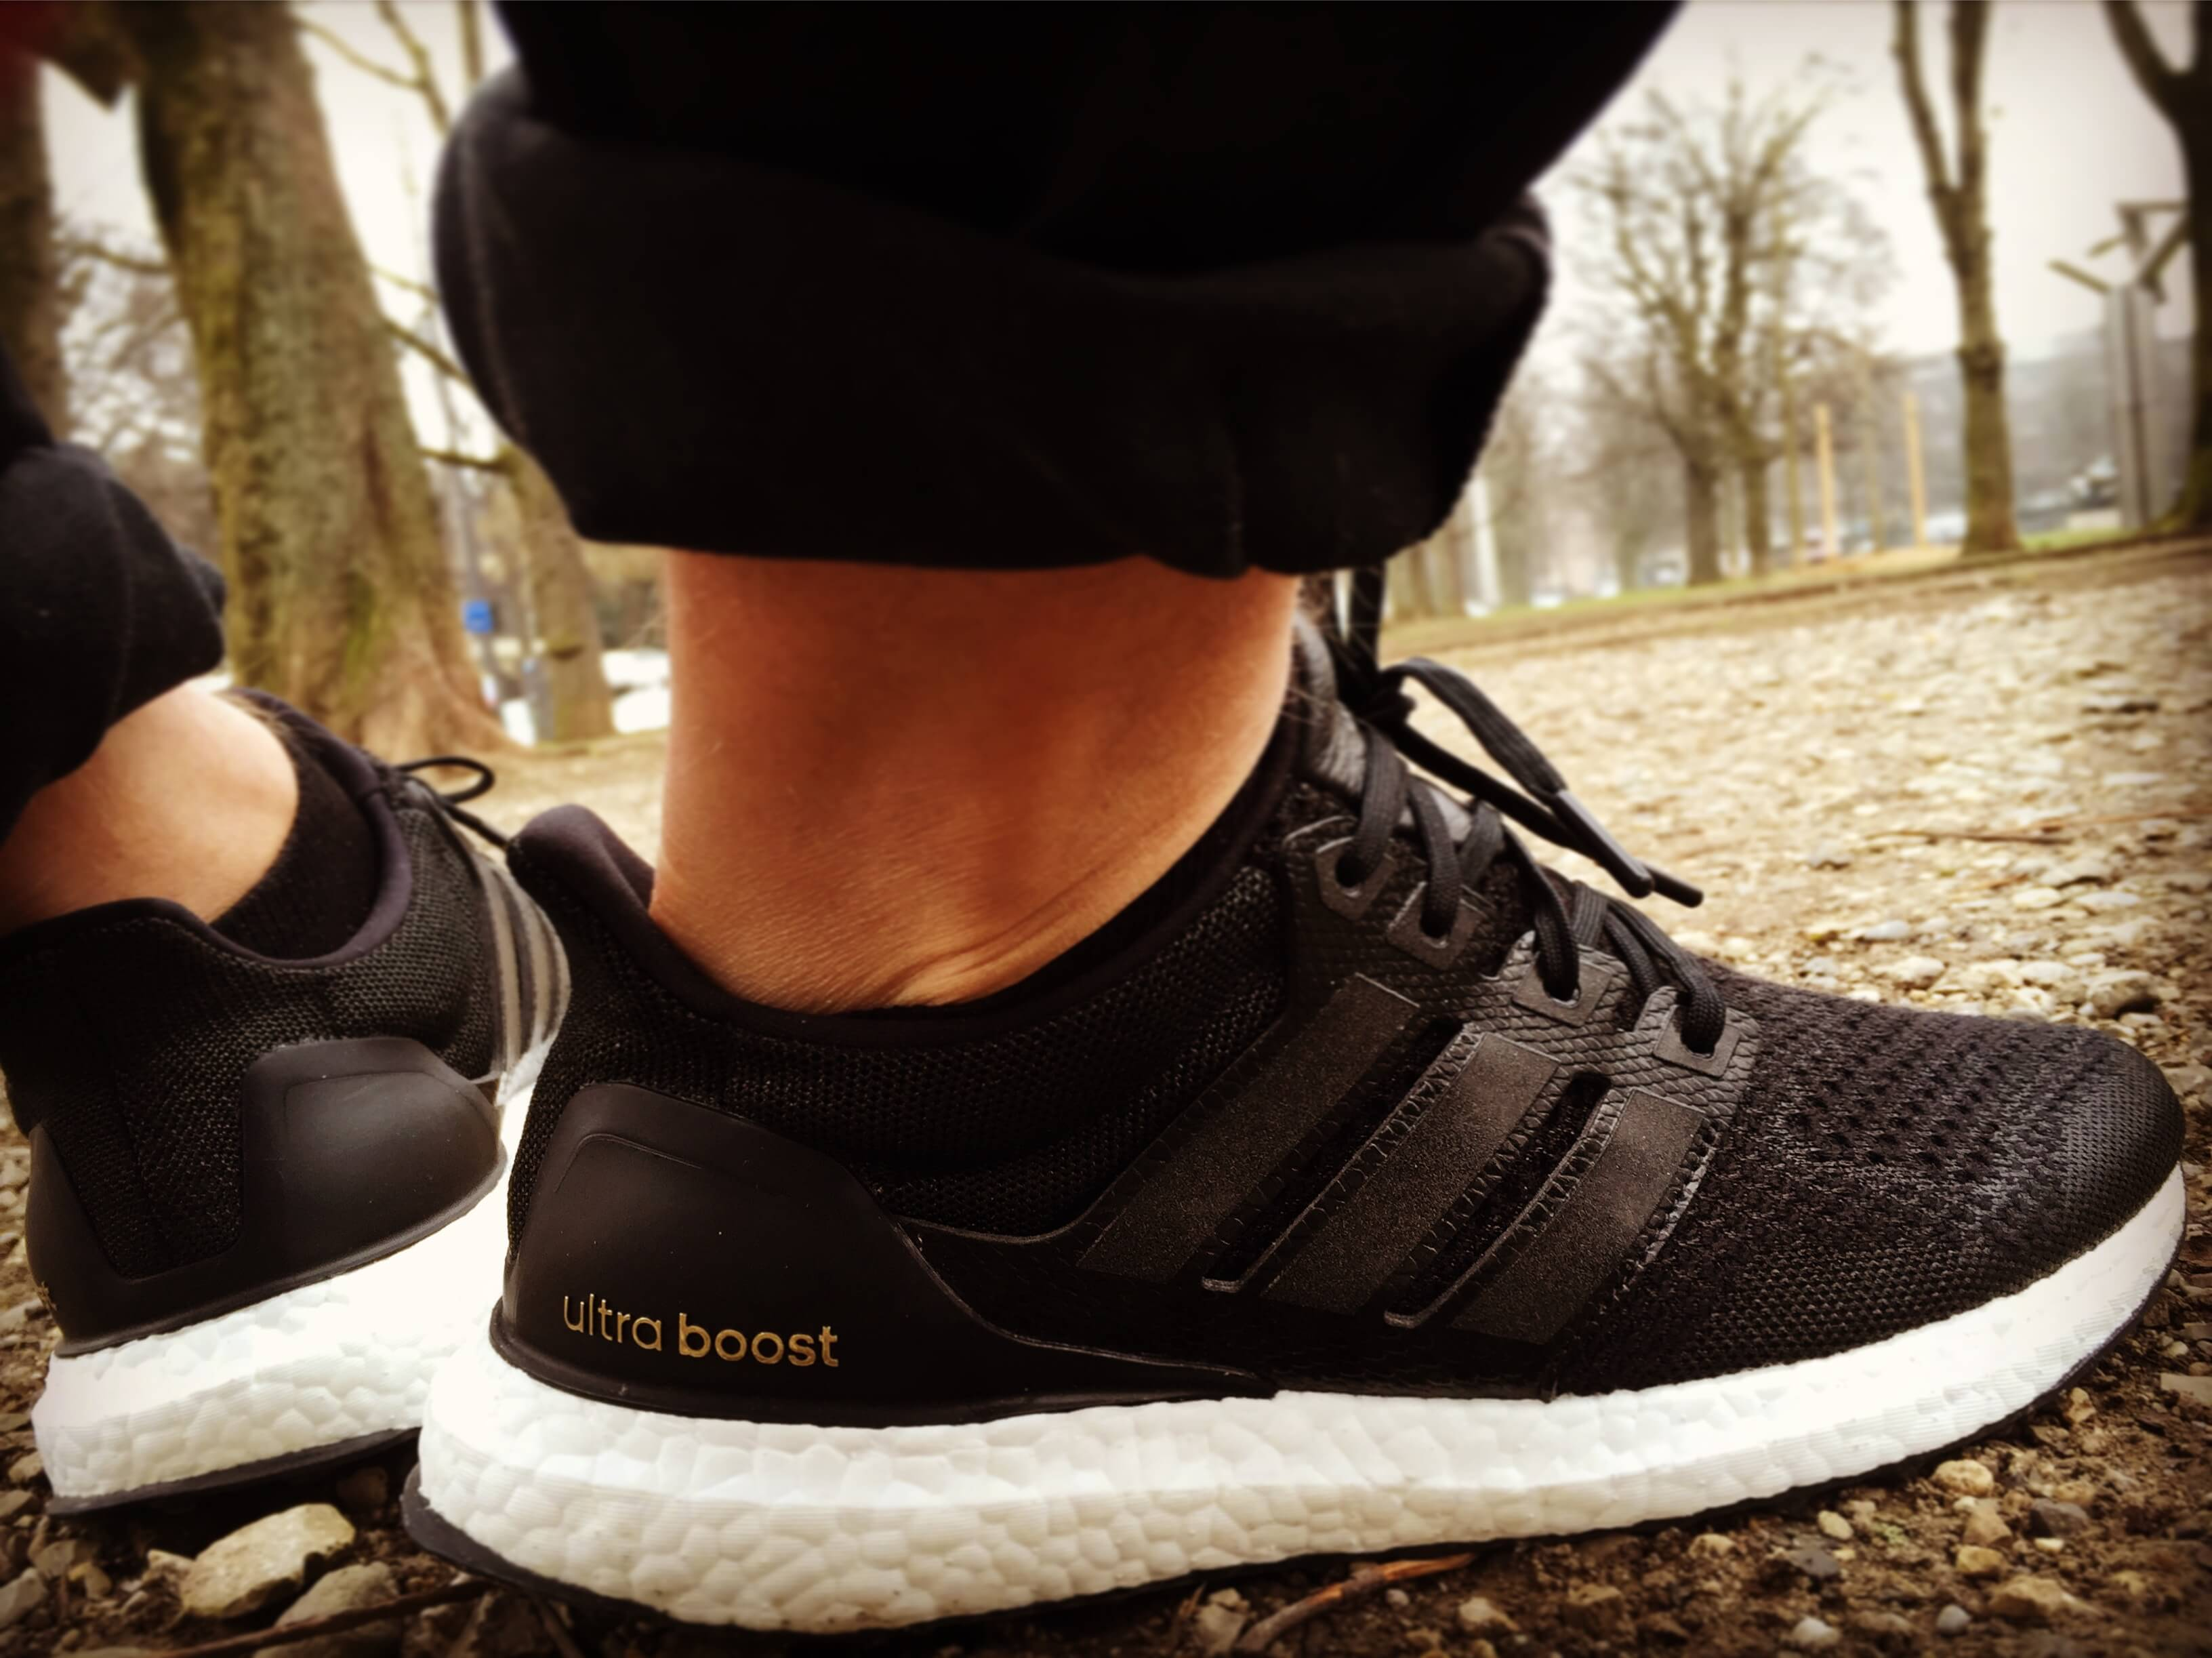 Adidas-Ultra Boost-J&D-Collective-Rear-View-Benstah-Onfeet